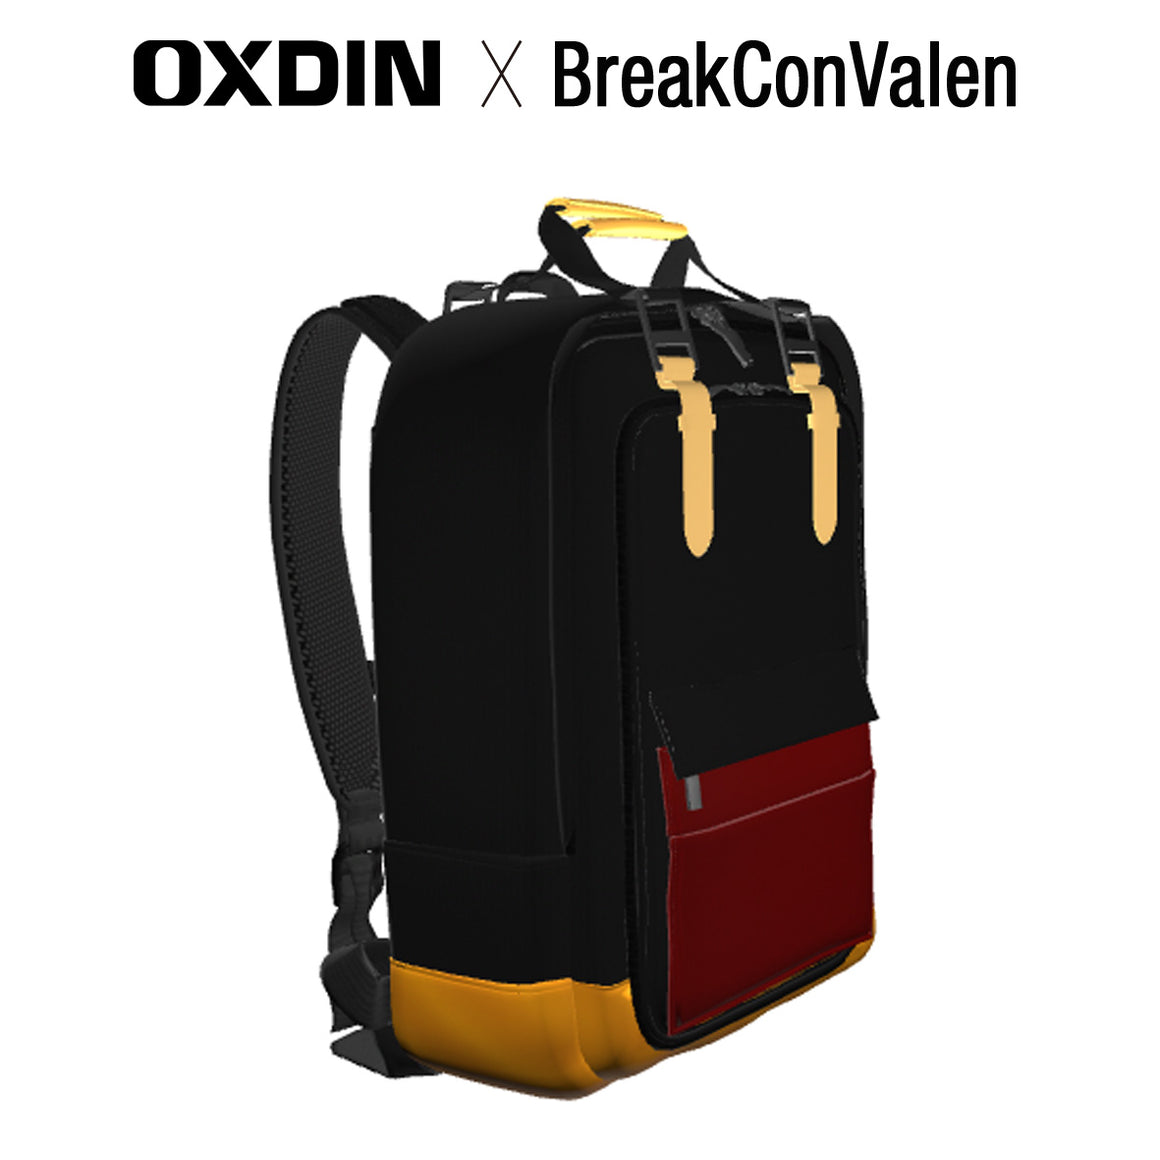 Build My Oxdin Bag By UK Designer Helen Scott